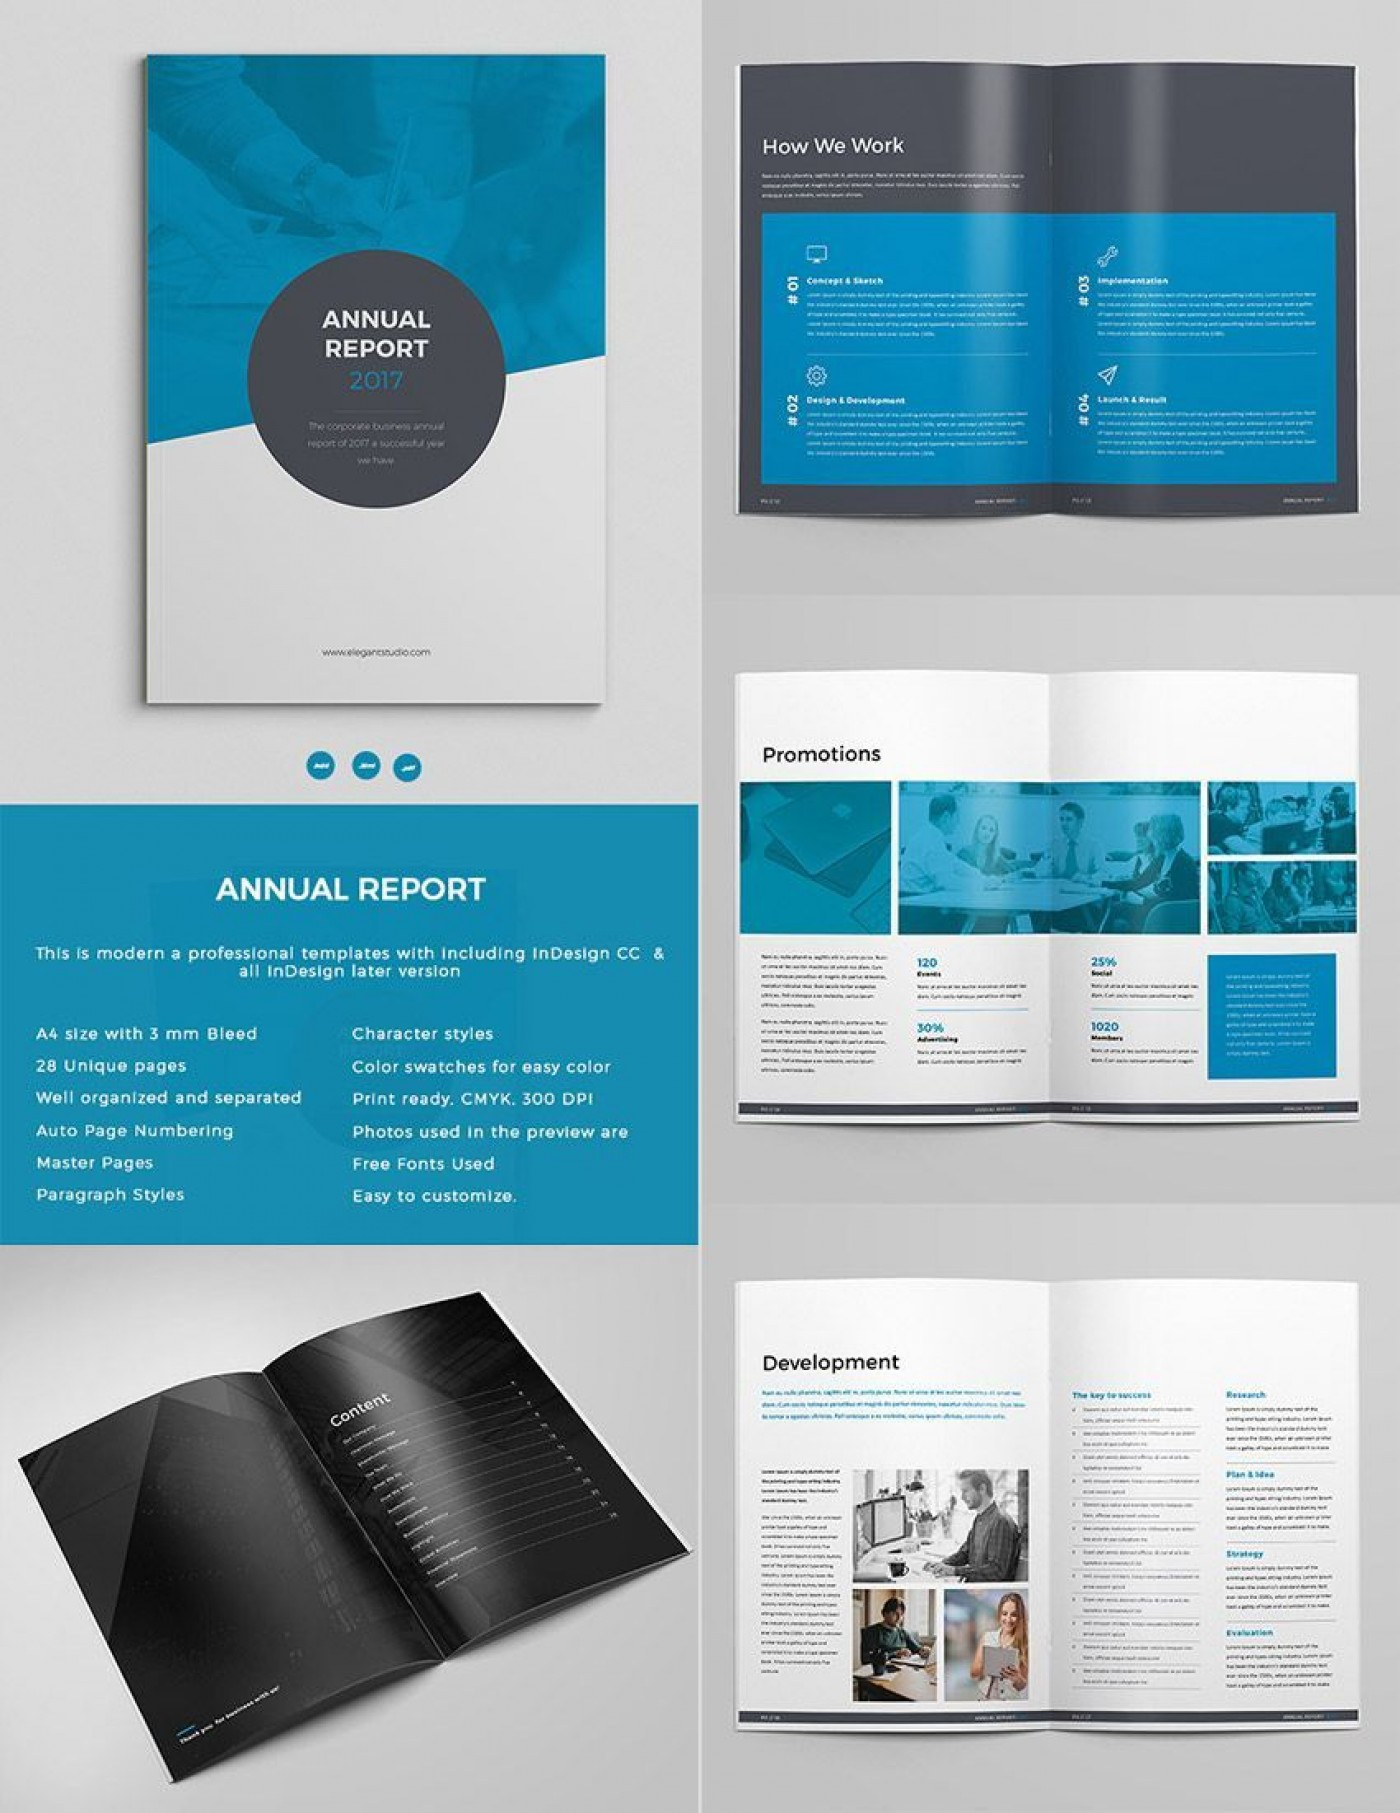 003 Simple Annual Report Design Template Indesign Picture  Free Download1400